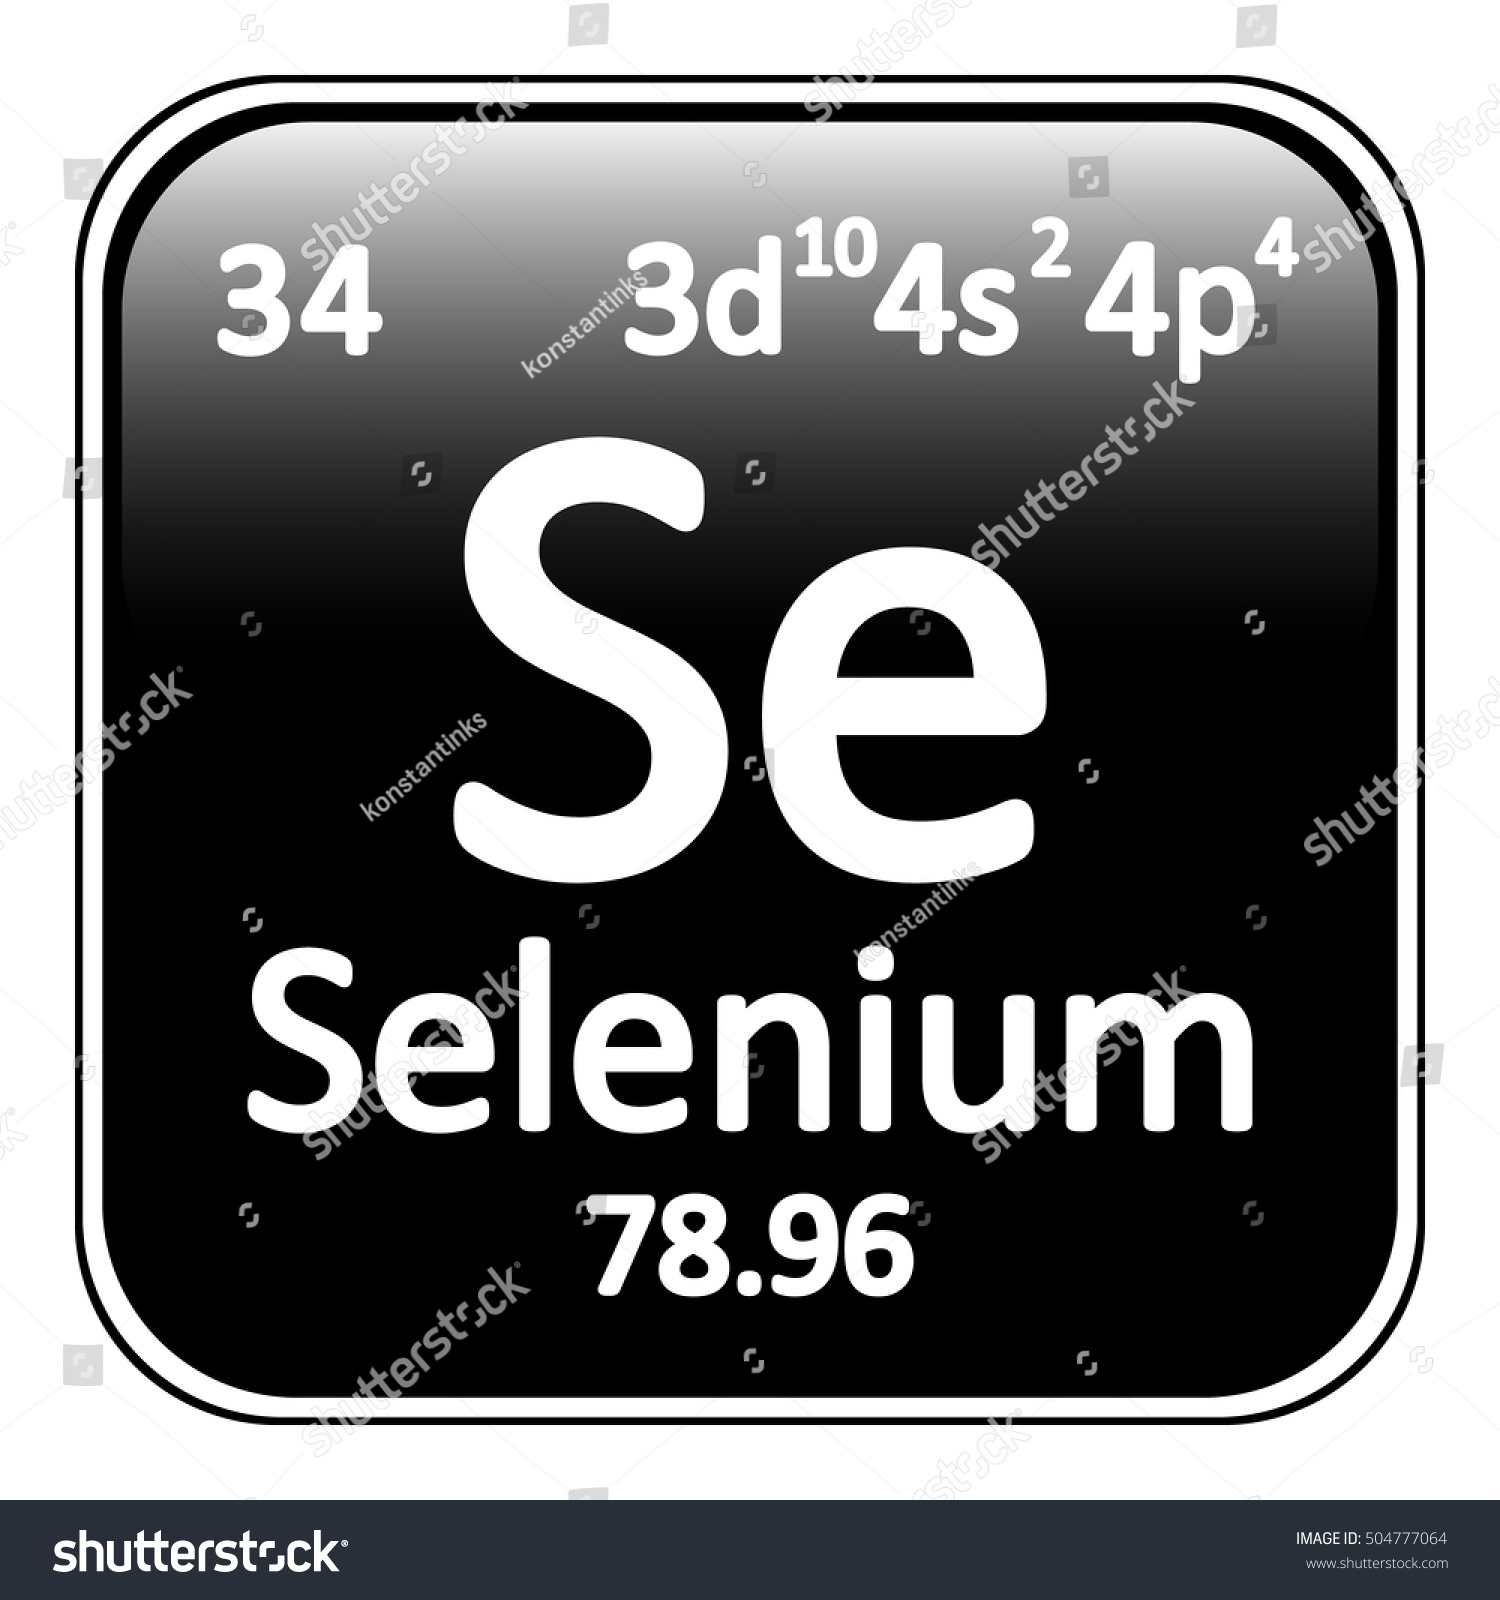 Periodic table element selenium icon on stock vector 504777064 periodic table element selenium icon on white background vector illustration gamestrikefo Images